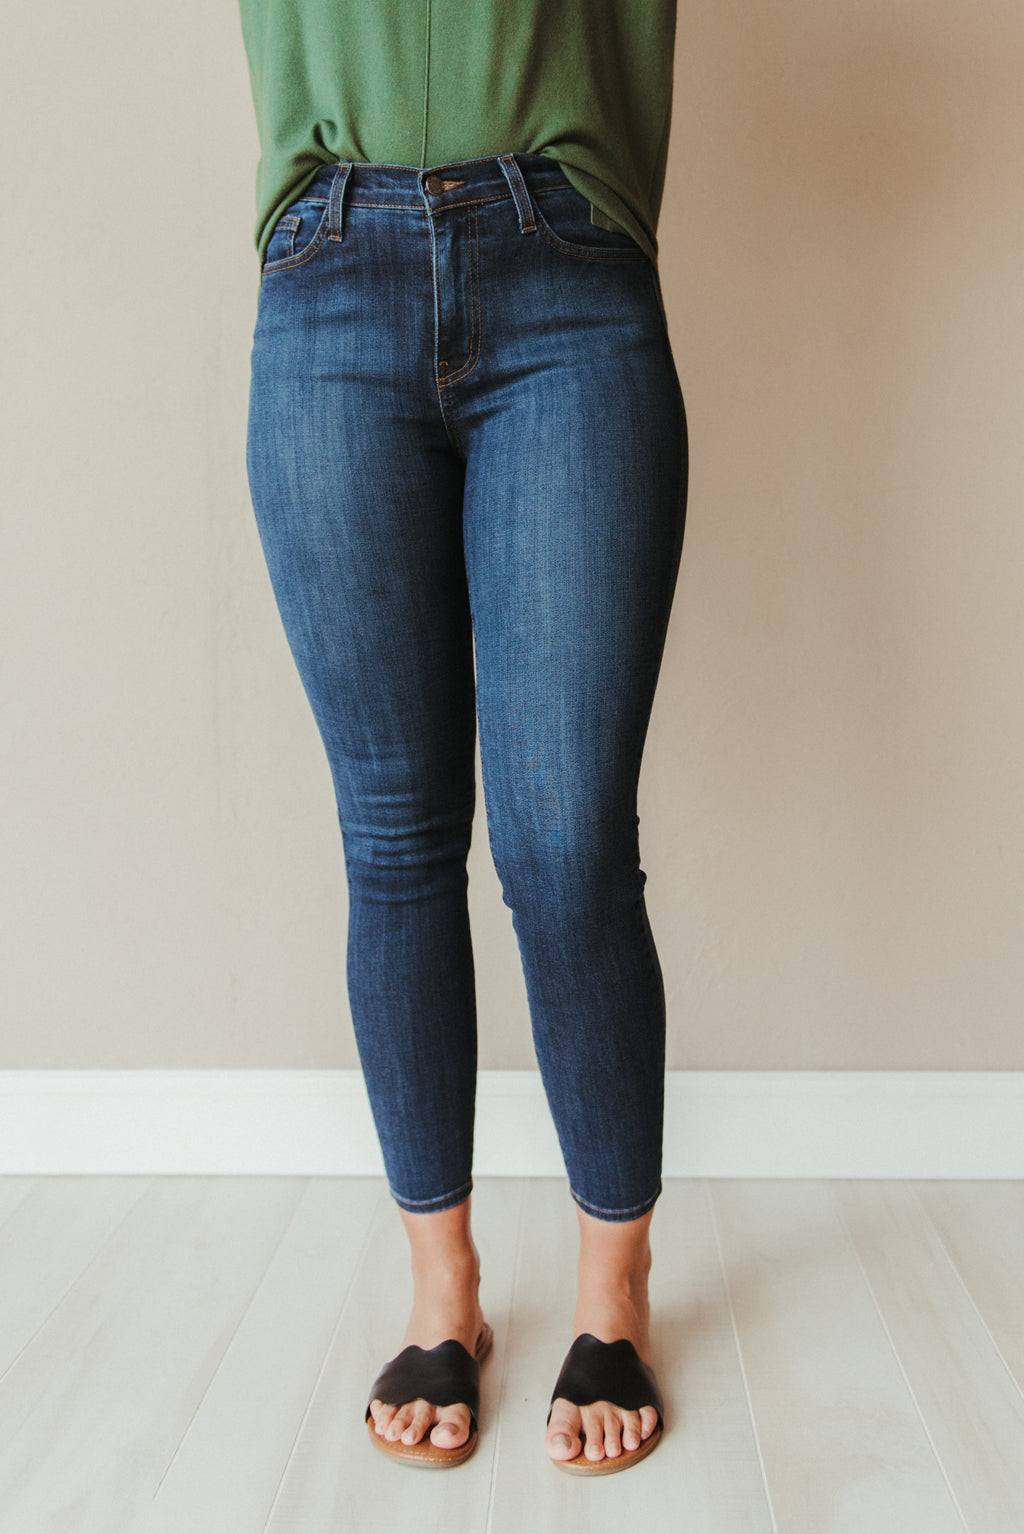 The Margot Jeans - J. Lilly's Boutique